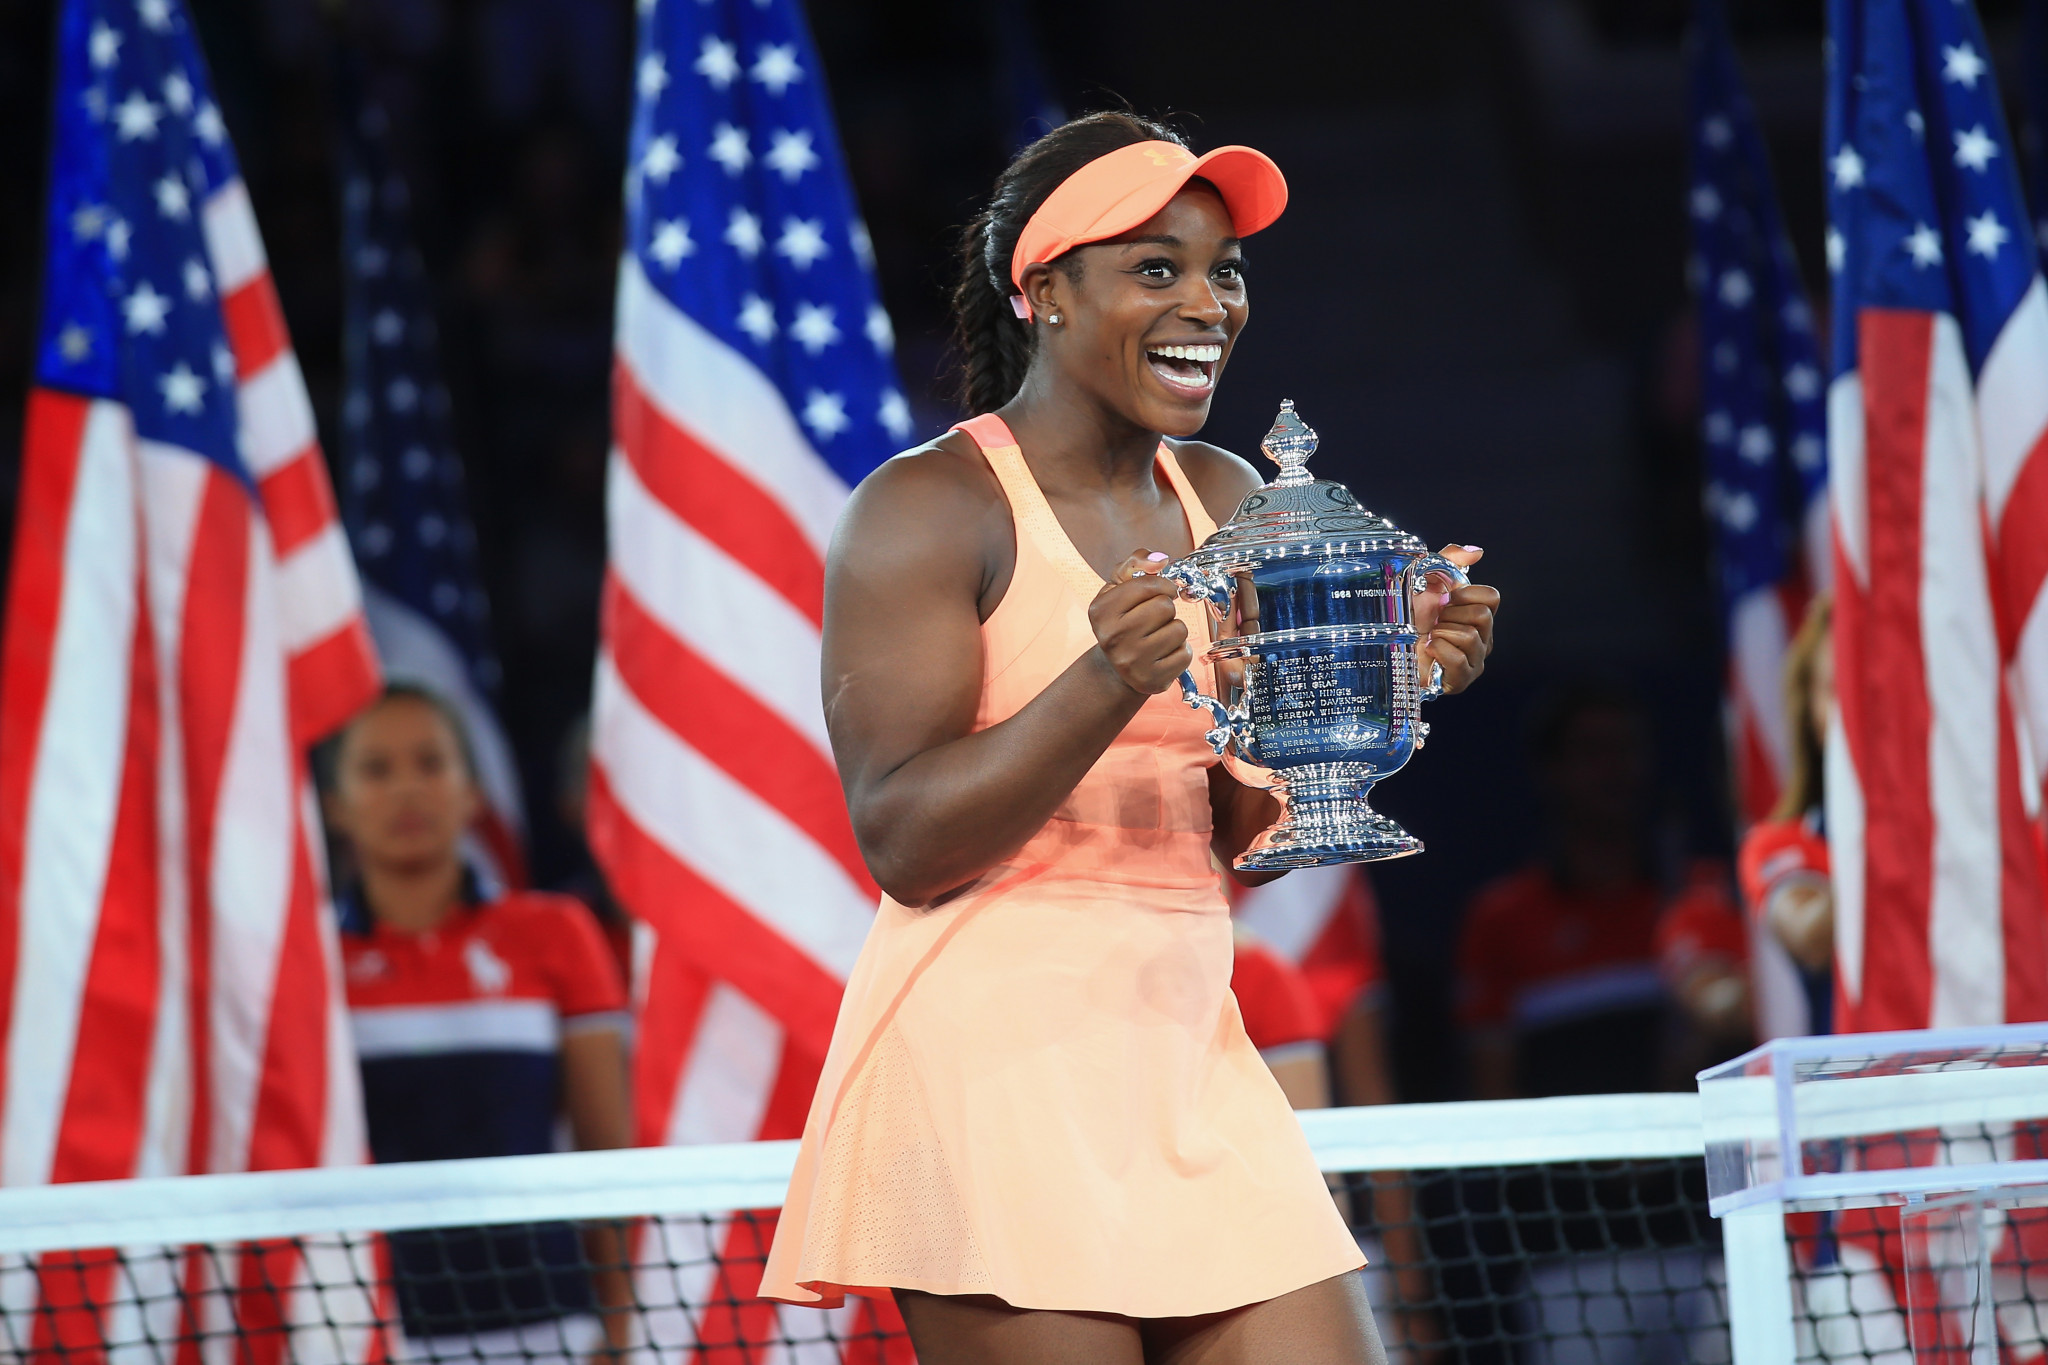 Sloane Stephens has won the women's singles US Open title ©Getty Images